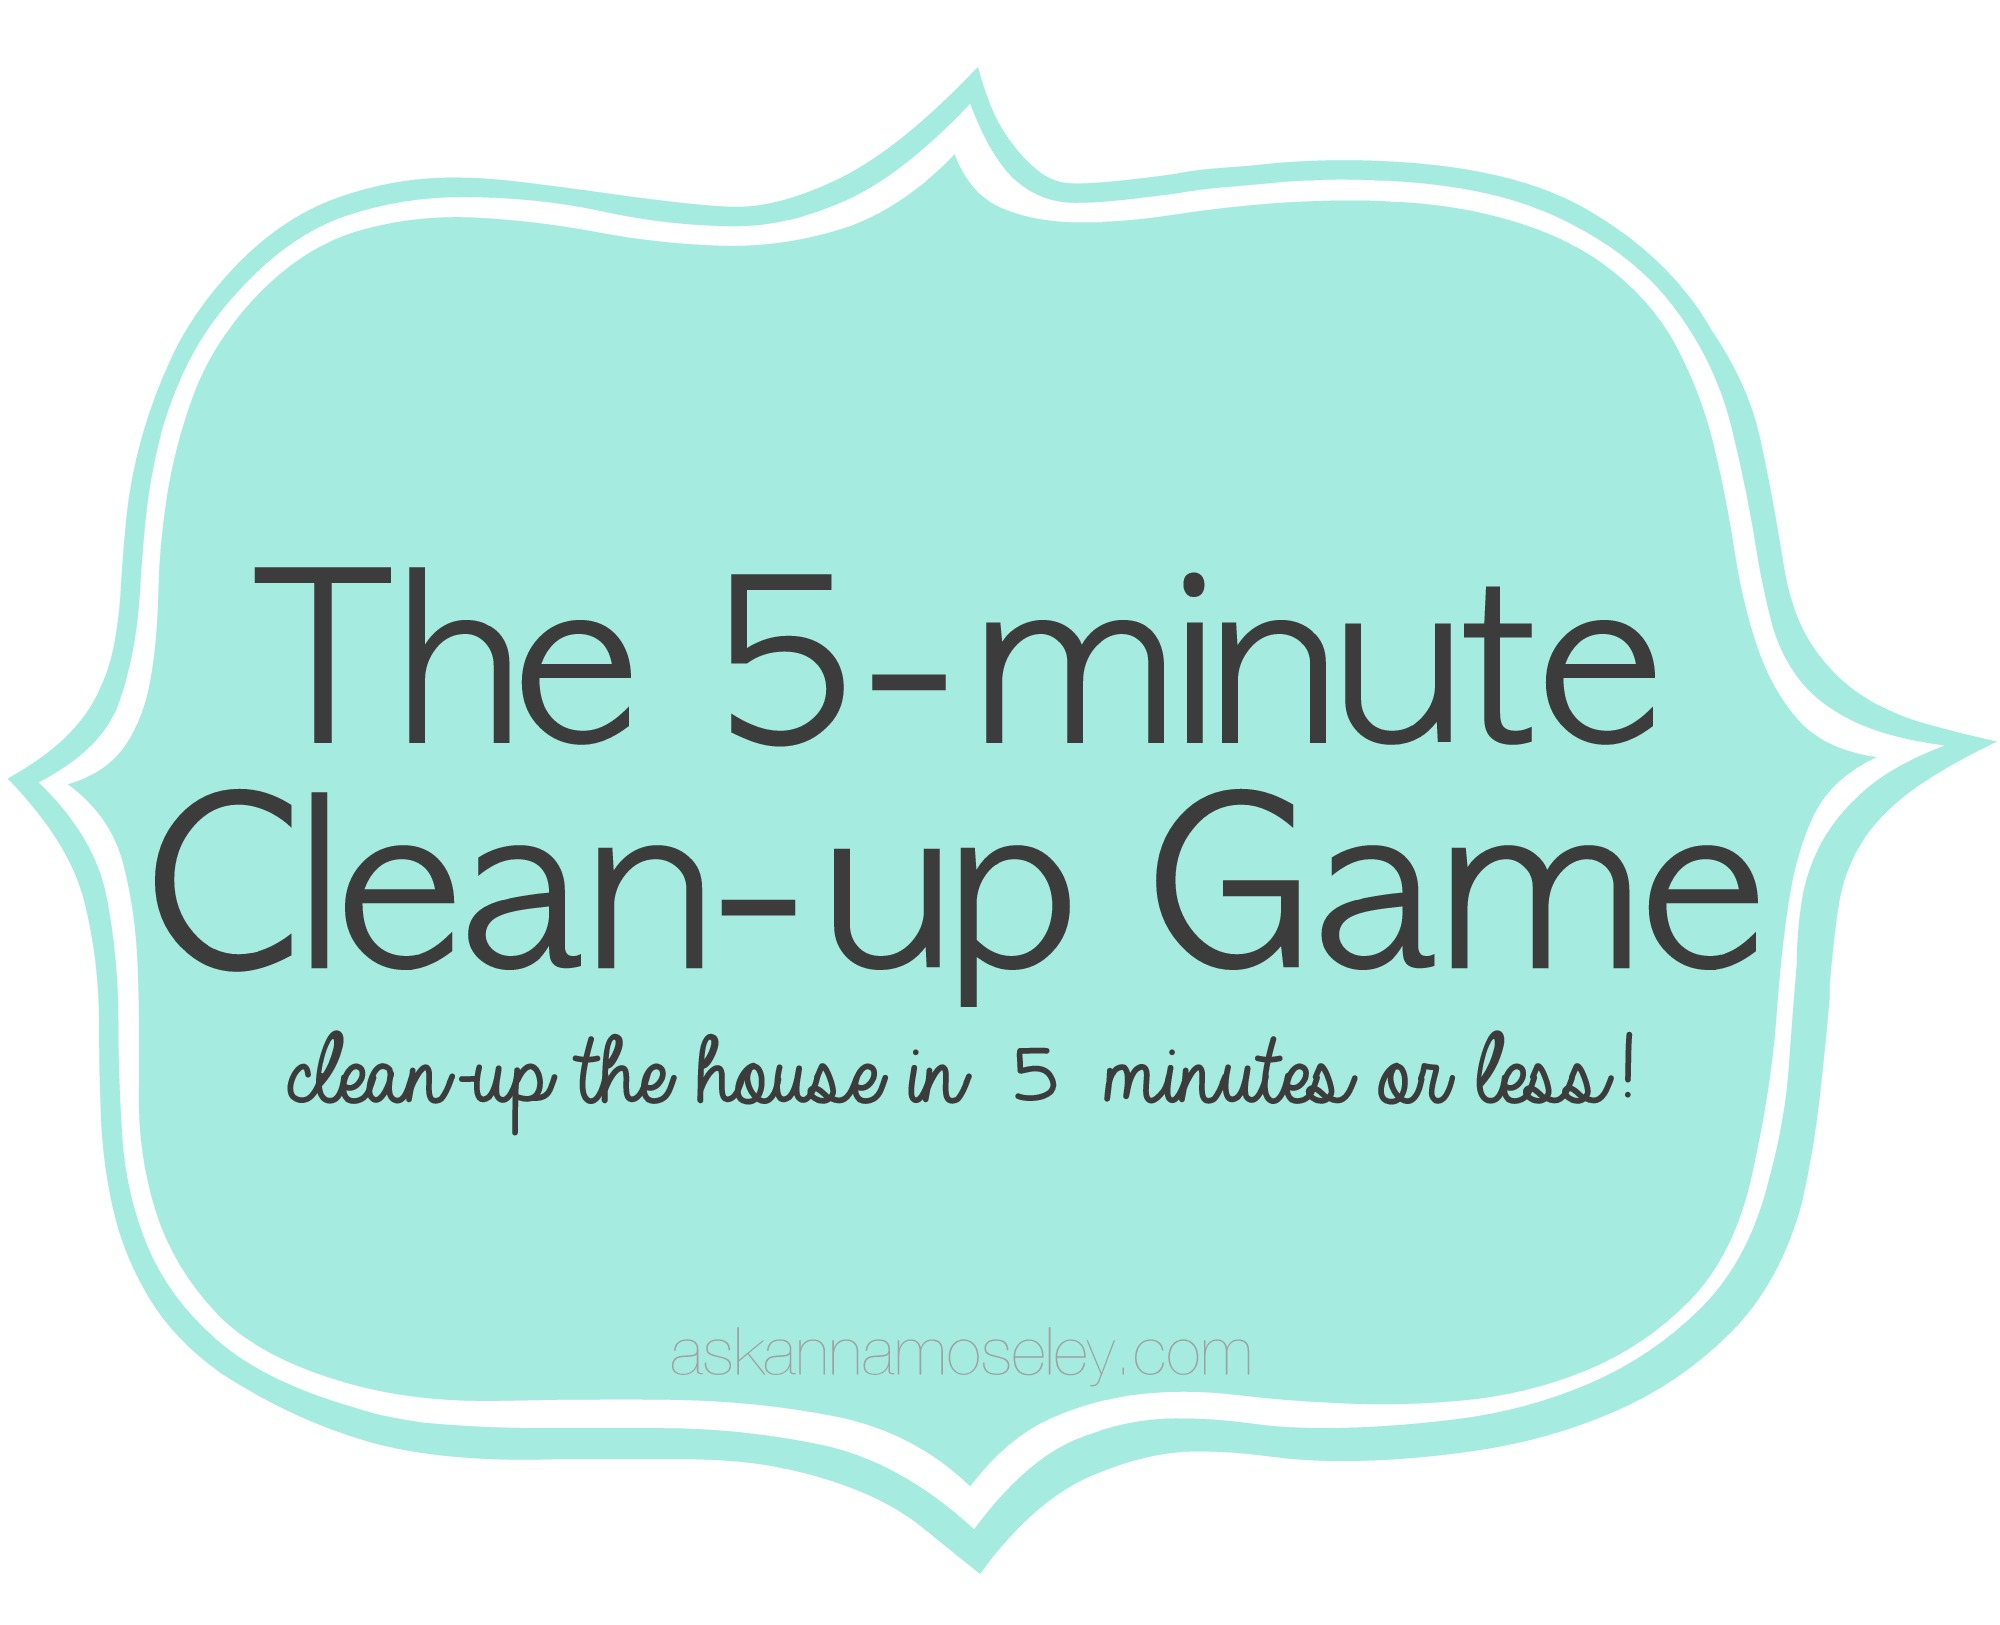 Clean up the House in 5 minutes or less!